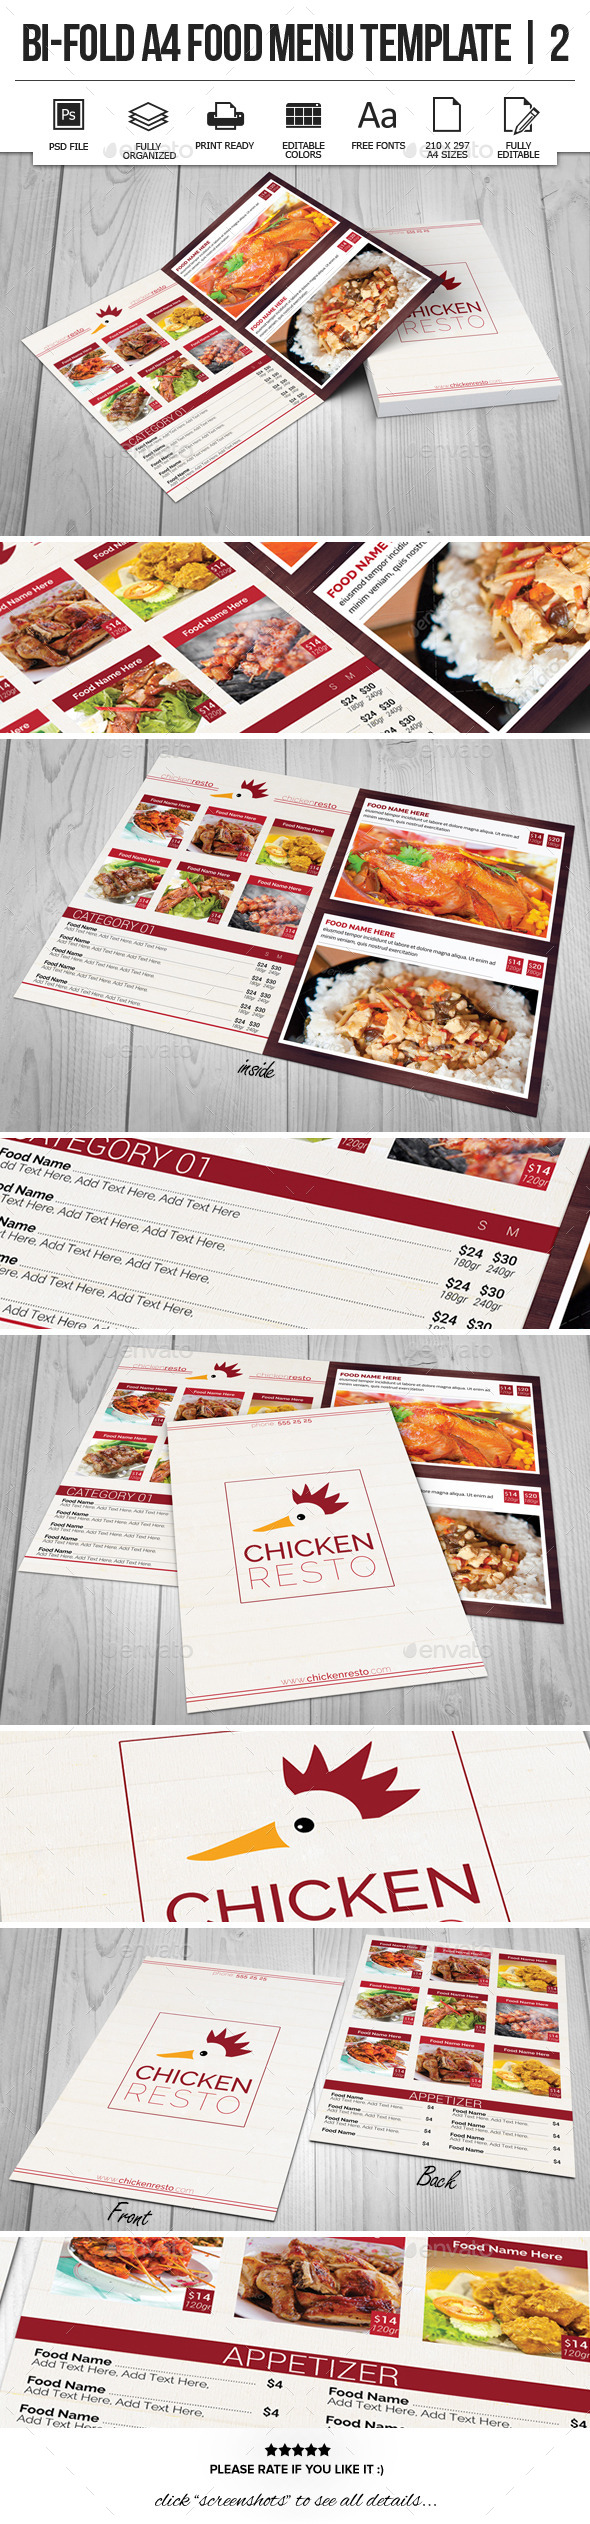 GraphicRiver Bi-Fold A4 Food Menu Template 2 9956858